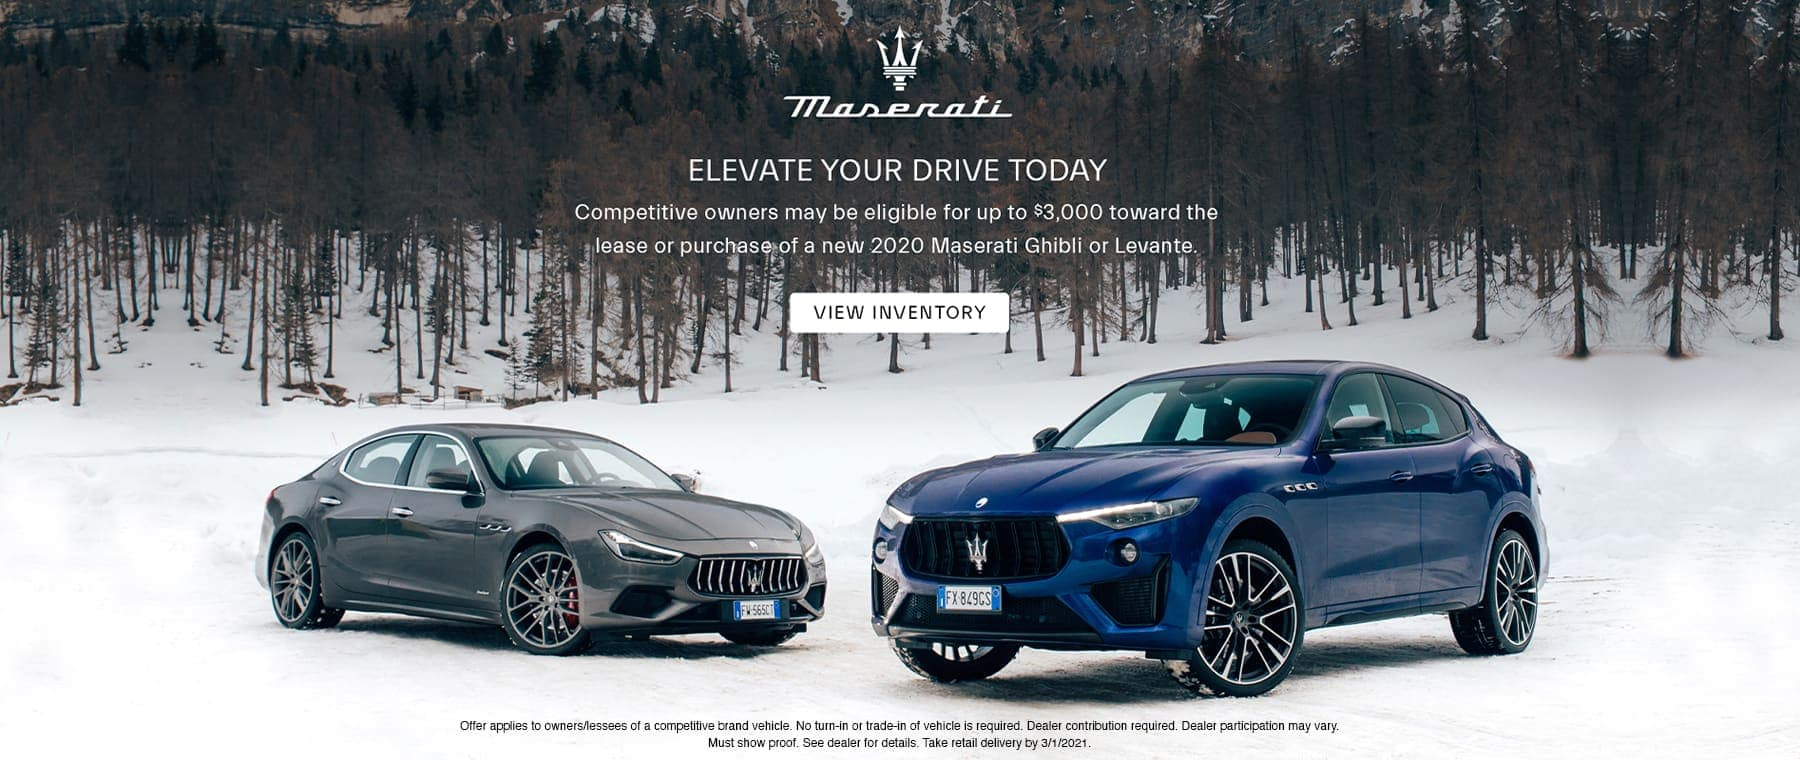 Maserati Ghibli & Levante Elevate offer